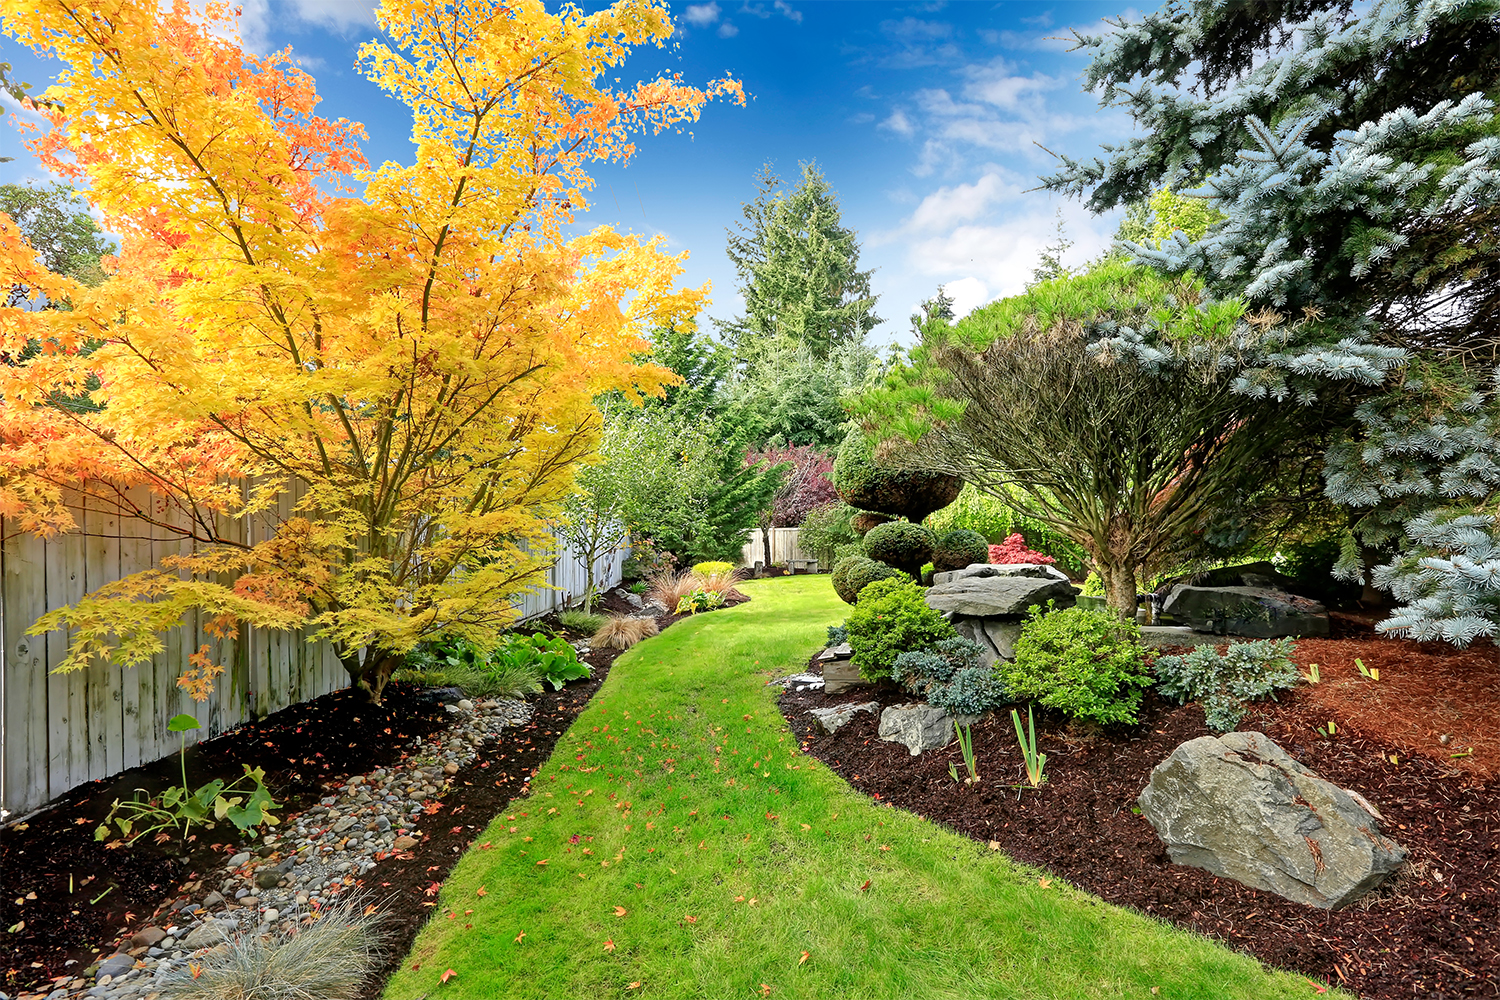 beautifully landscaped yard featuring a variety of plants, trees, shrubs and mulch.